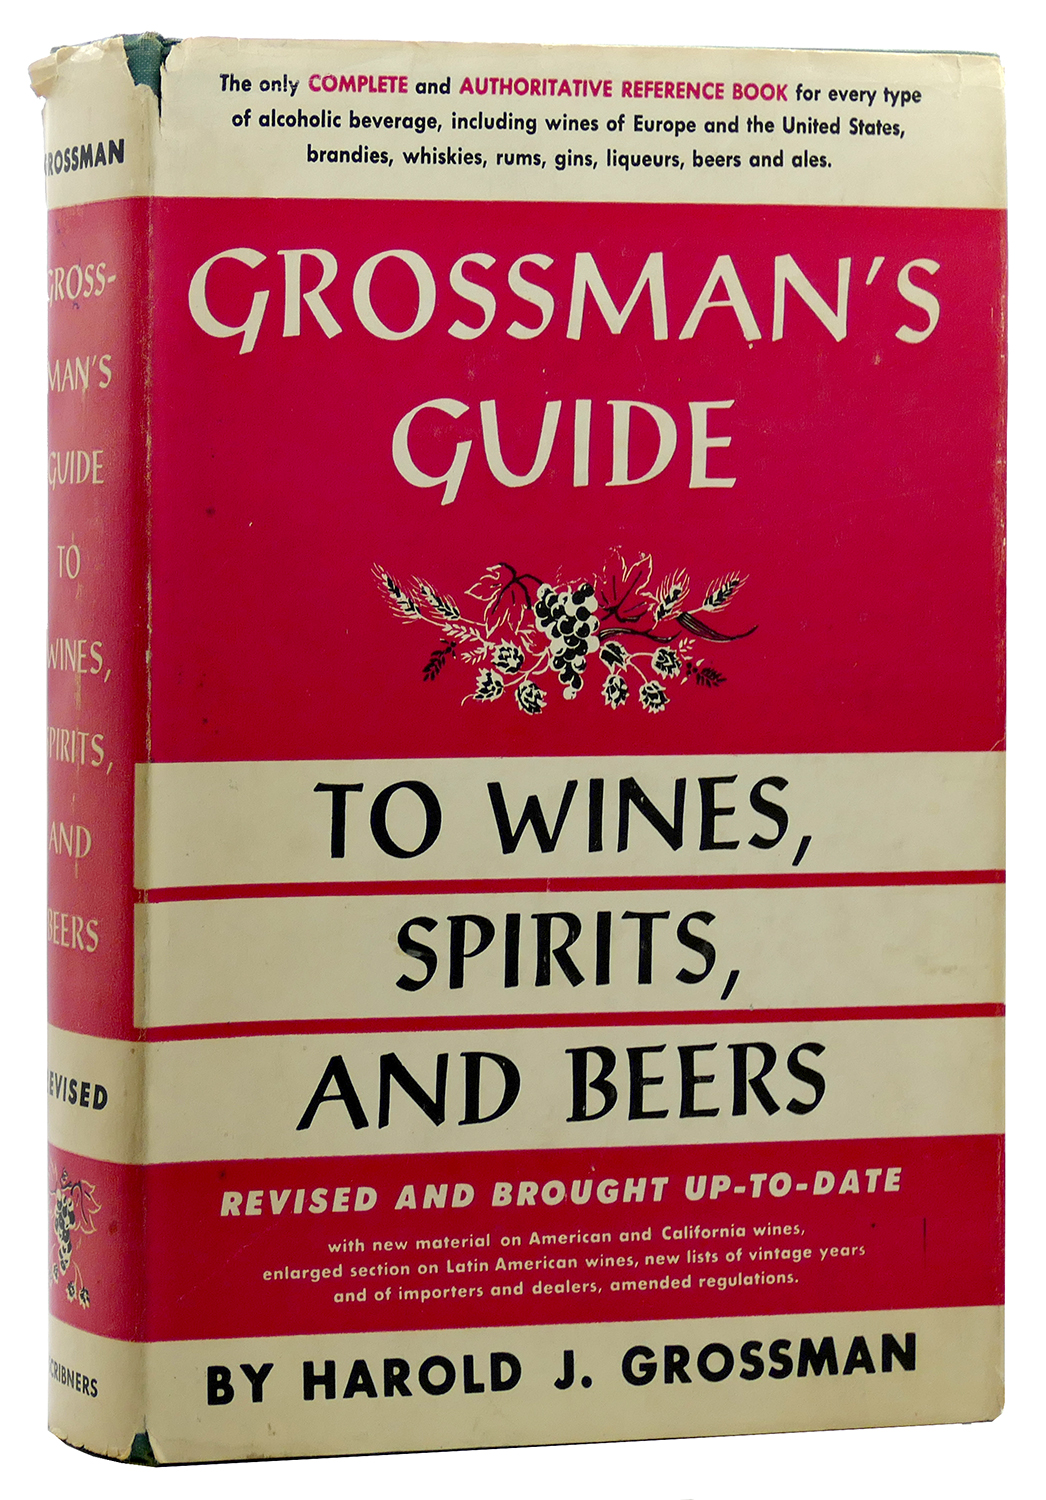 GROSSMAN'S GUIDE TO WINES, SPIRITS, AND BEERS Harold J. Grossman [ ] [Couverture rigide] Very Good in a Good price clipped dust jacket. Edge wear with chips and tears including a one inch tear on back spine edge. Some fading to spine. ; 8vo 8  - 9  tall; Original dust jacket protected by archival Brodart cover. All domestic orders shipped protected in a Box.